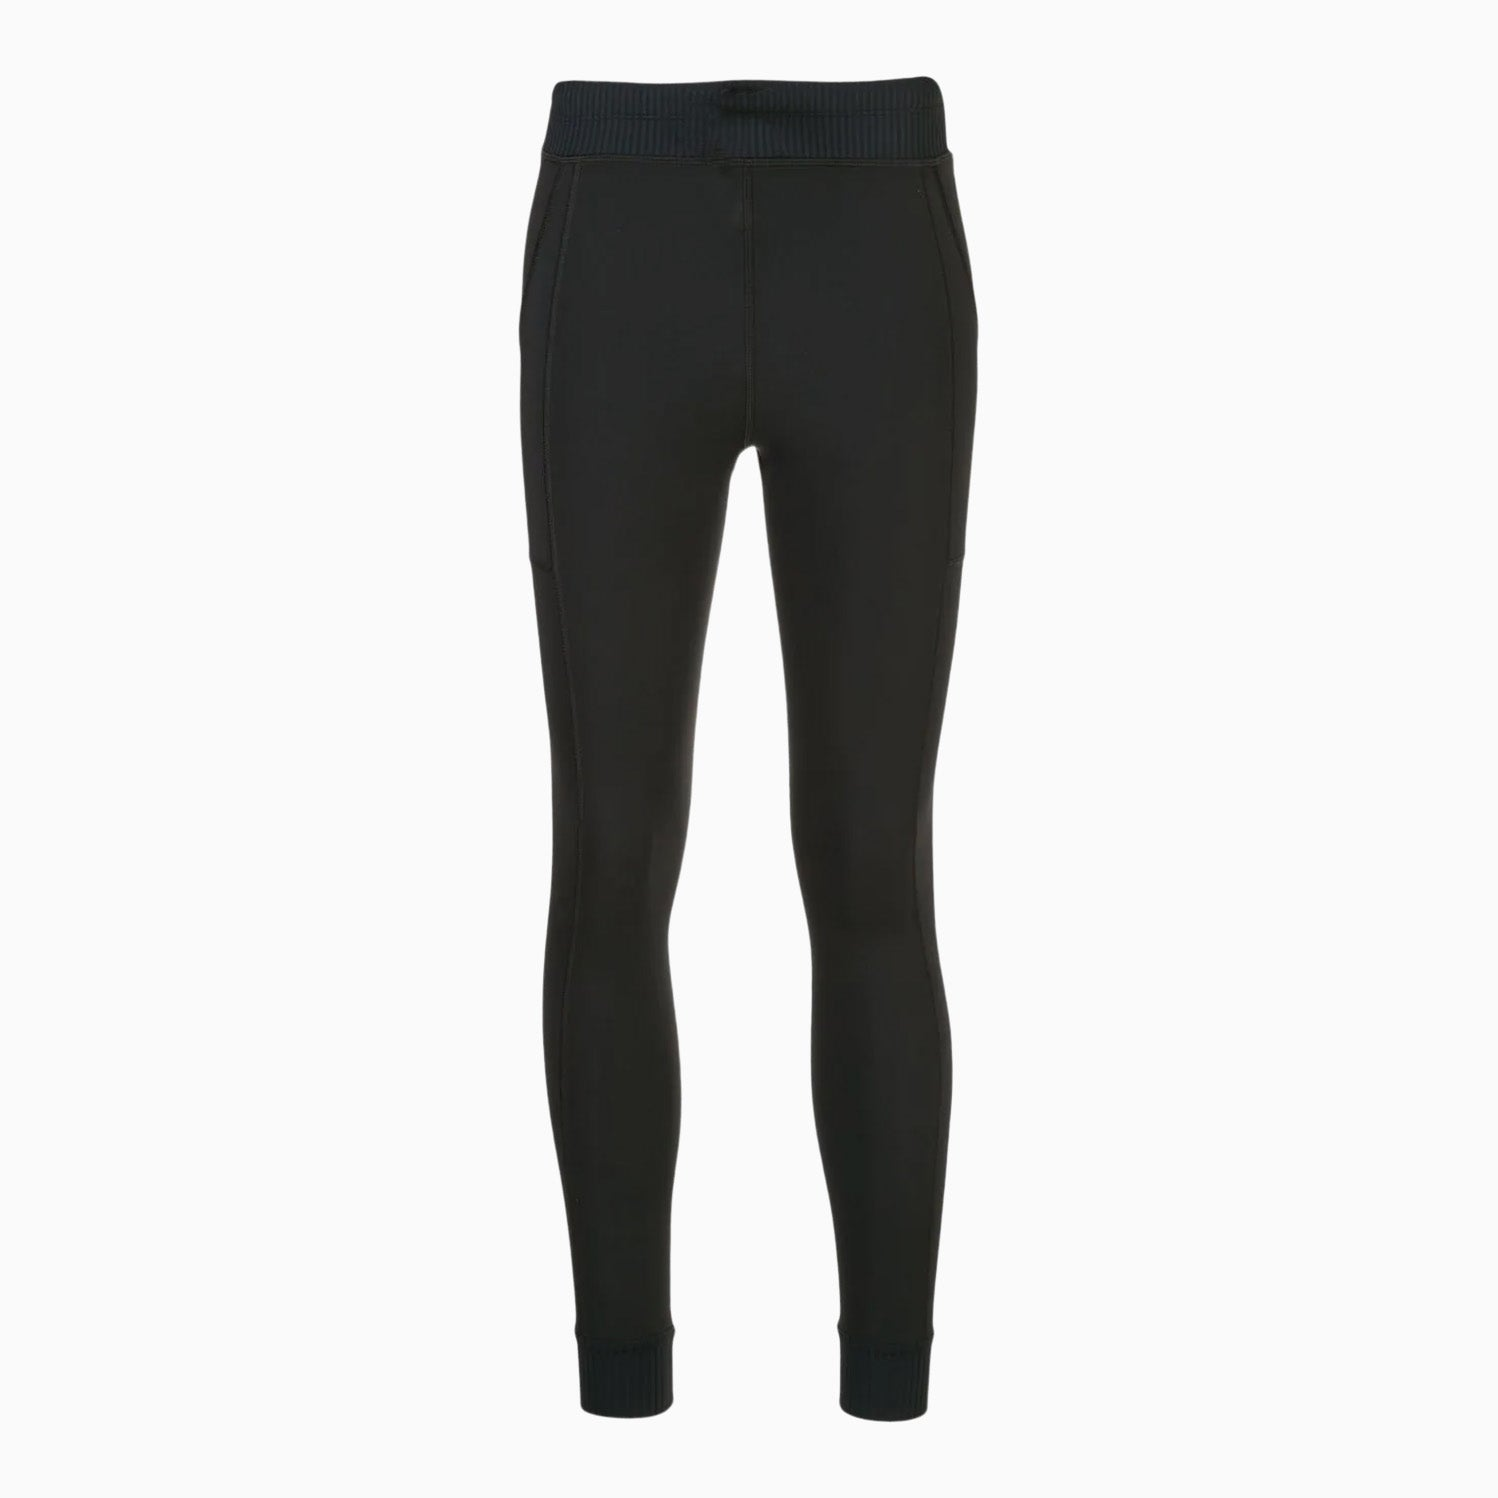 Black Jersey Leggings